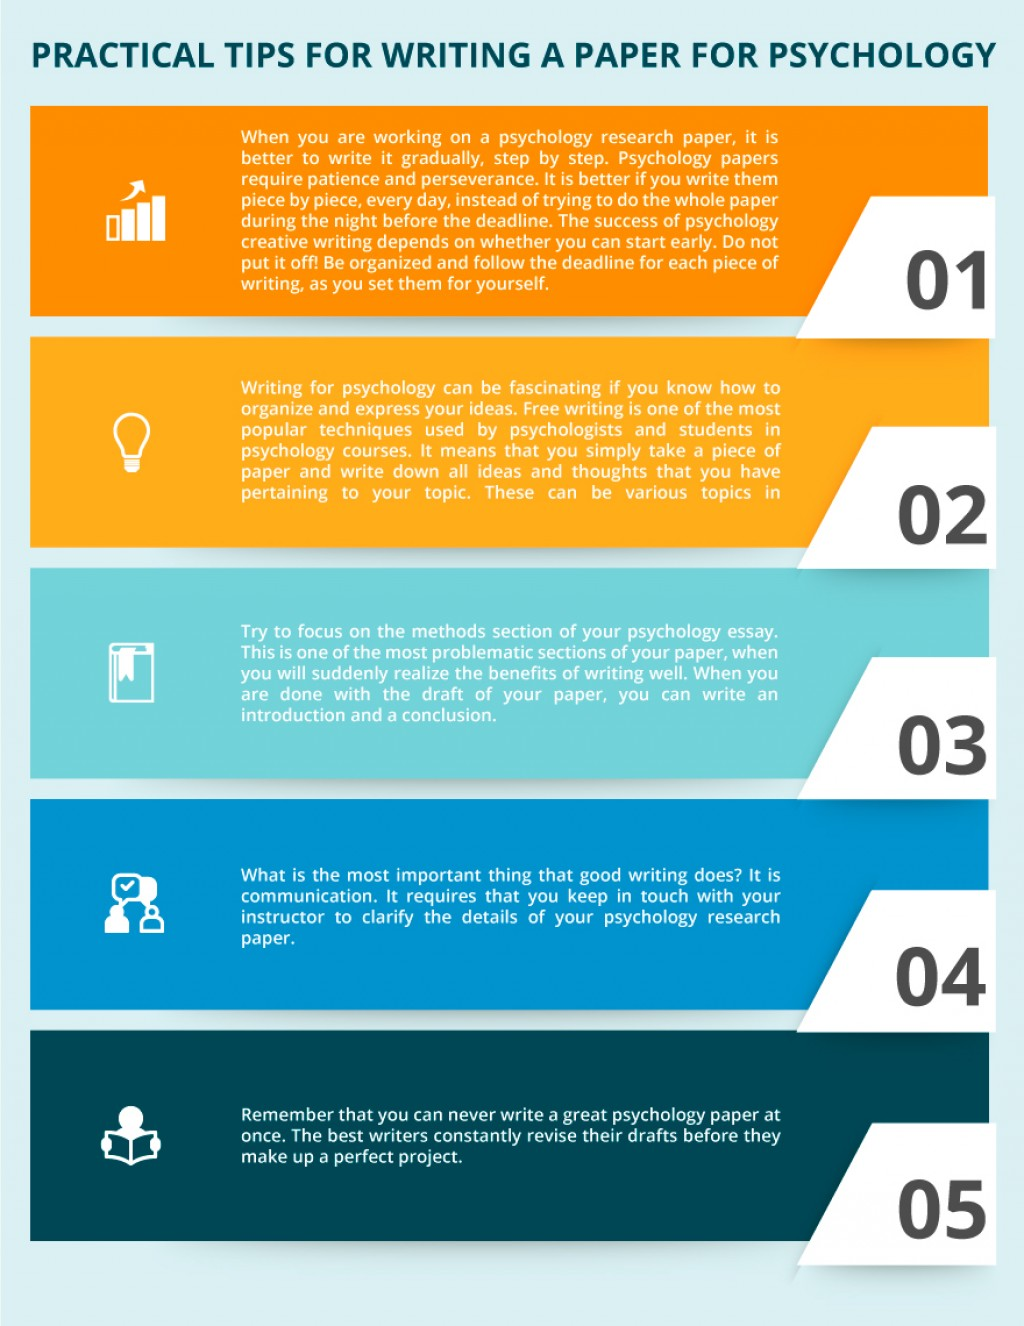 027 Good Topics For Research Papers In Psychology Infographic Practical Tips Writing Paper  Excellent List Of InterestingLarge